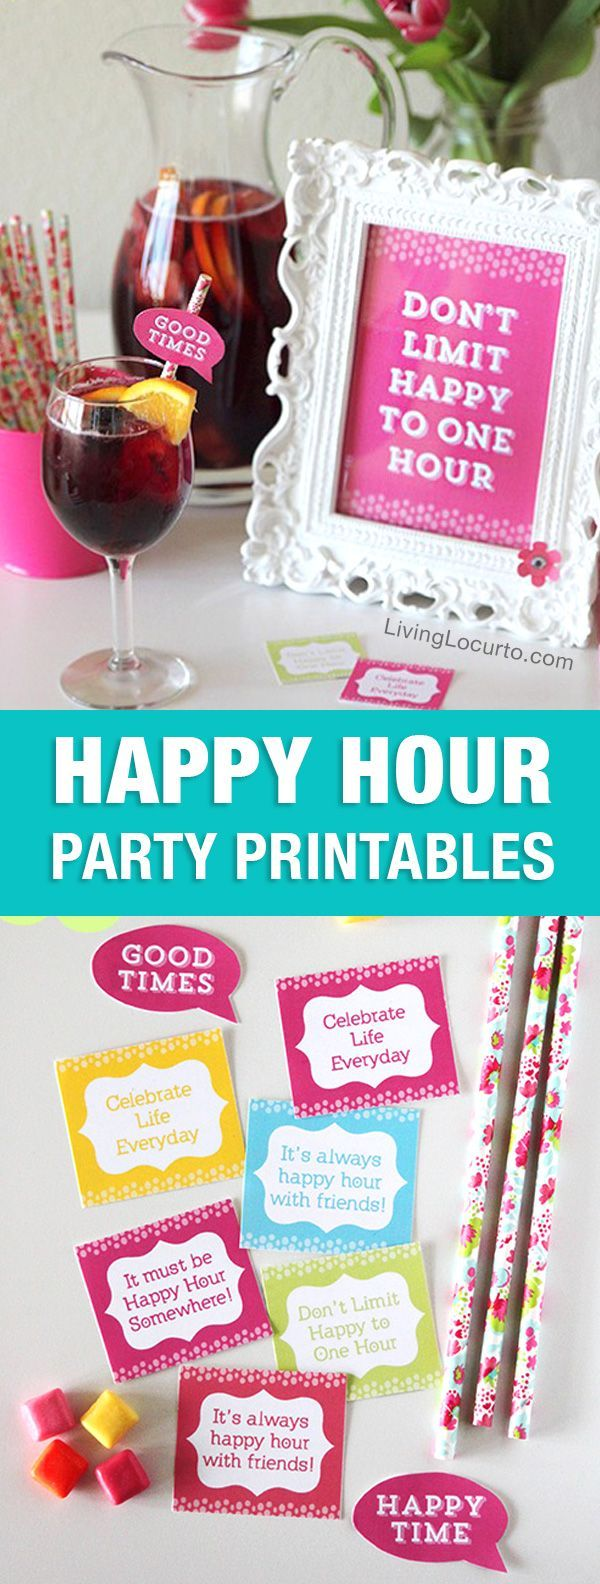 Fun Happy Hour Party Ideas Happy Hour Party Party Planning Printable Diy Kids Party